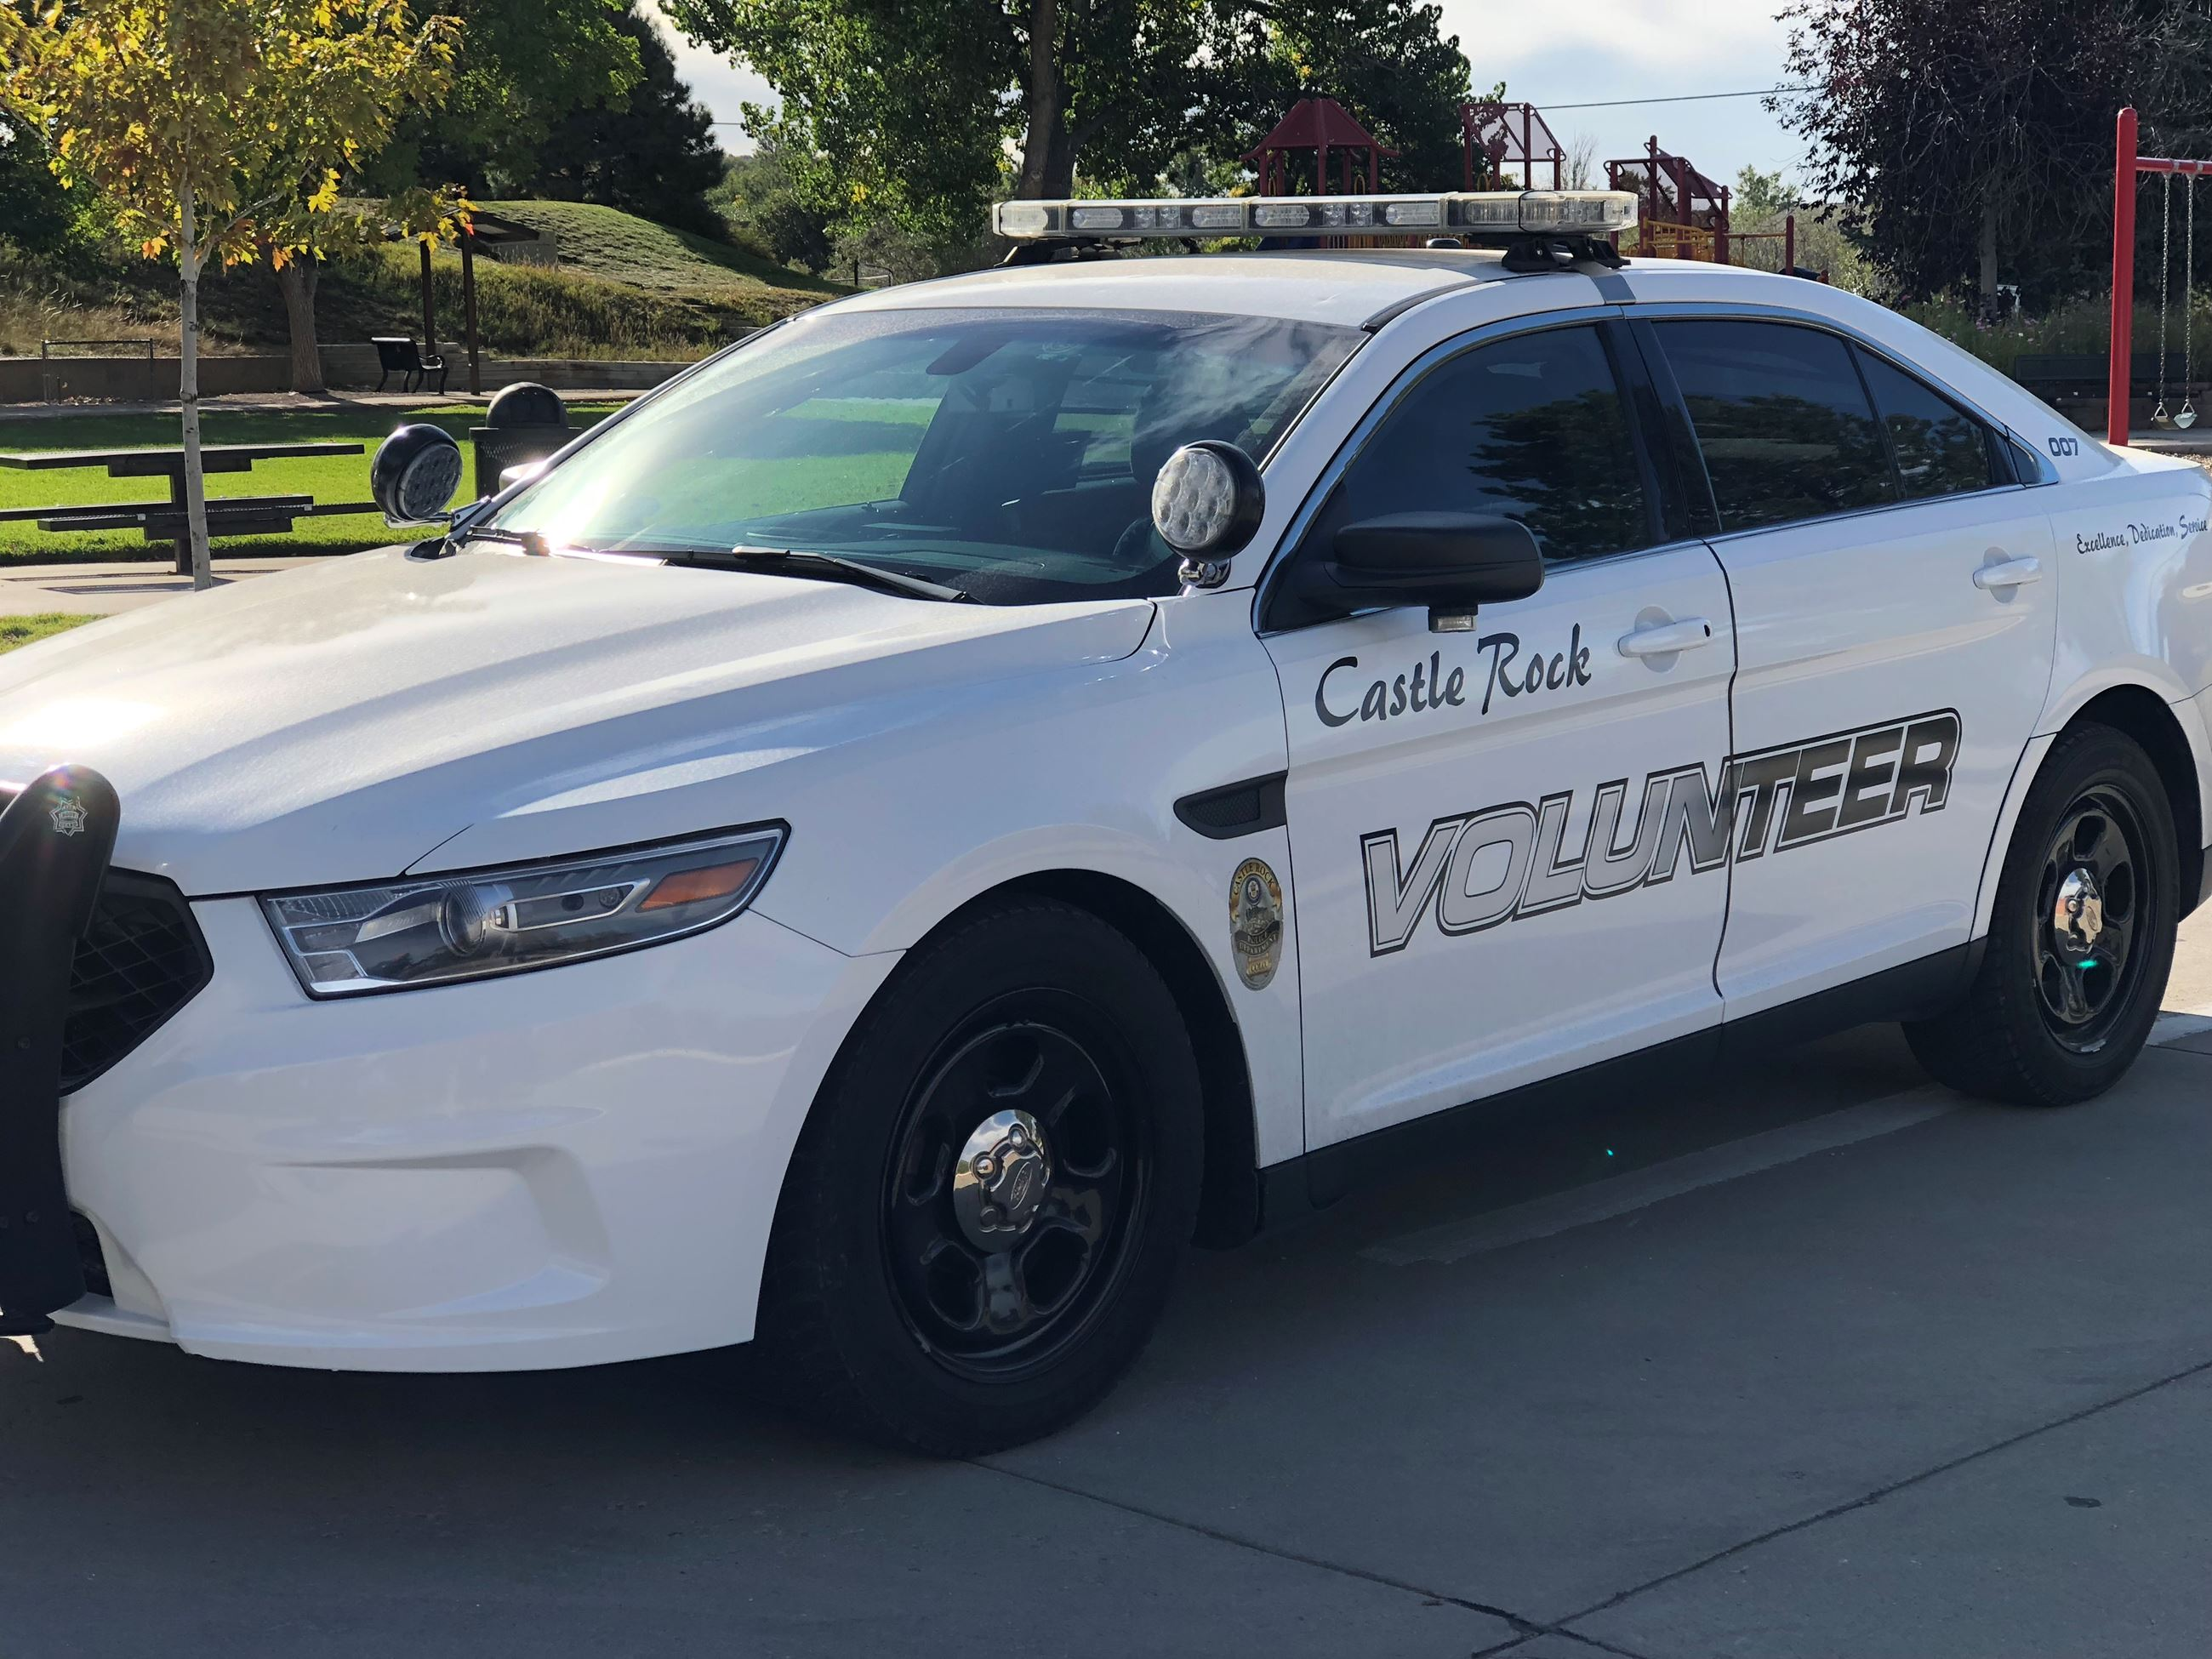 Community Safety Volunteer vehicle